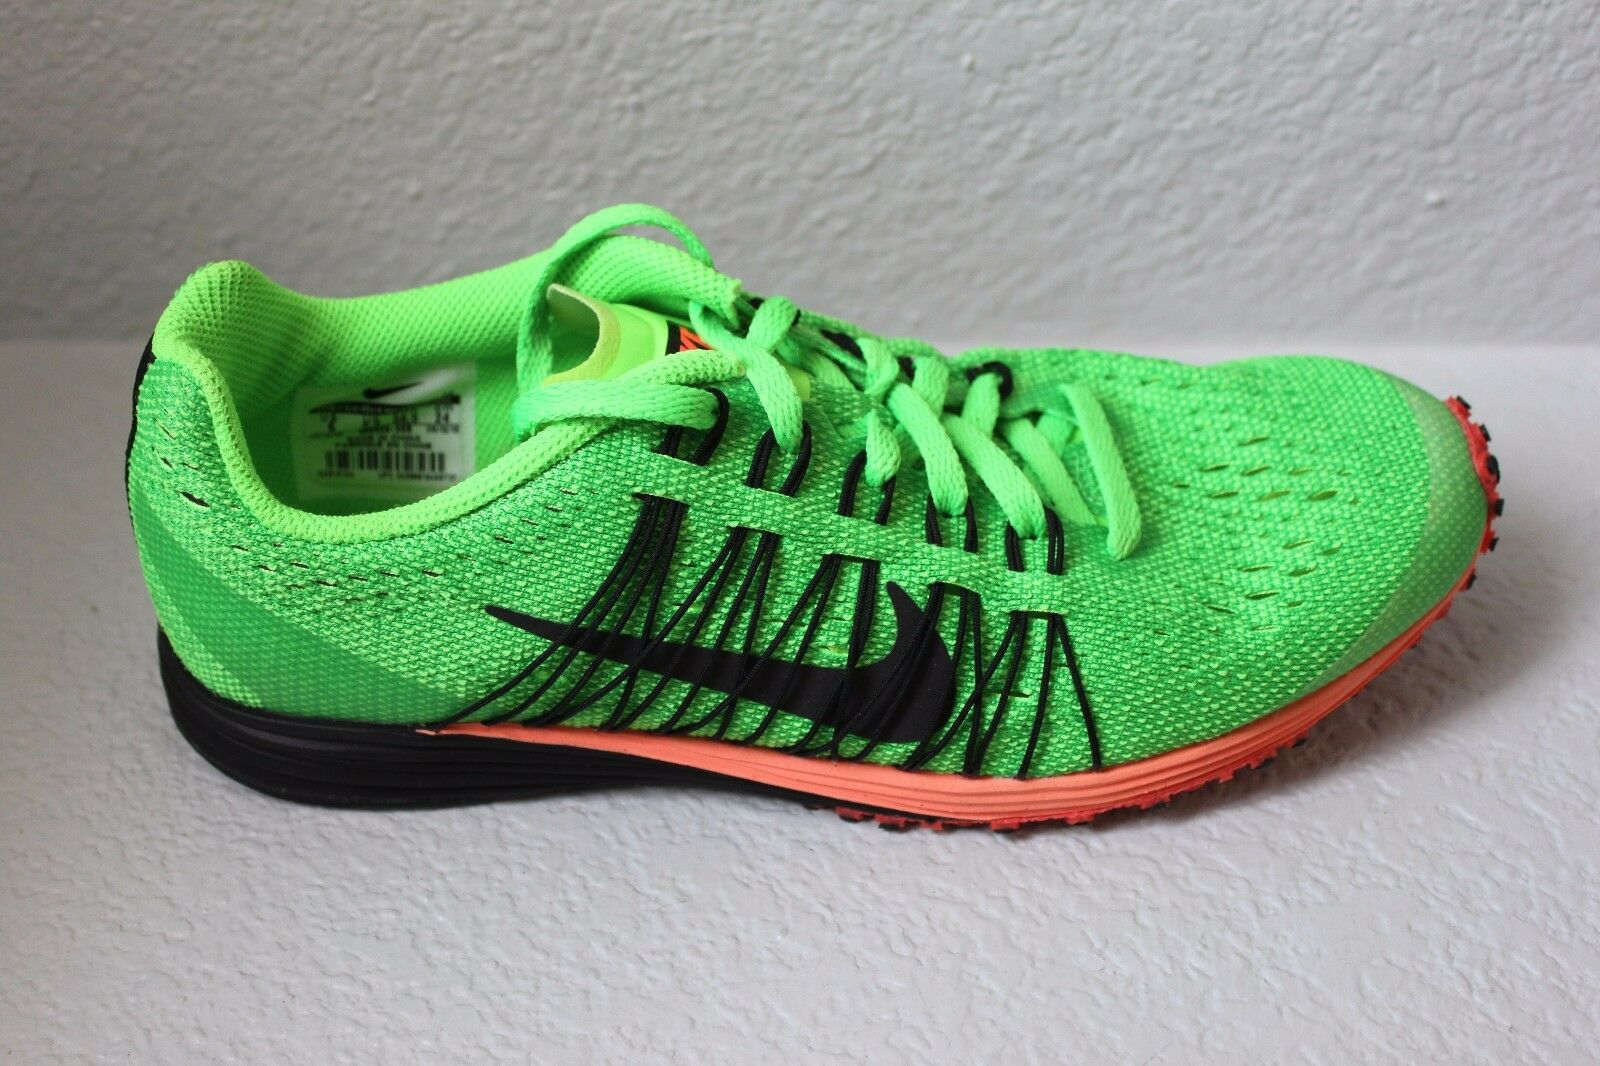 New Nike Lunarspider Lunar Spider R6 Running Japan Racing 6 Racer Chaussures  Hommes 6 Racing e915bf